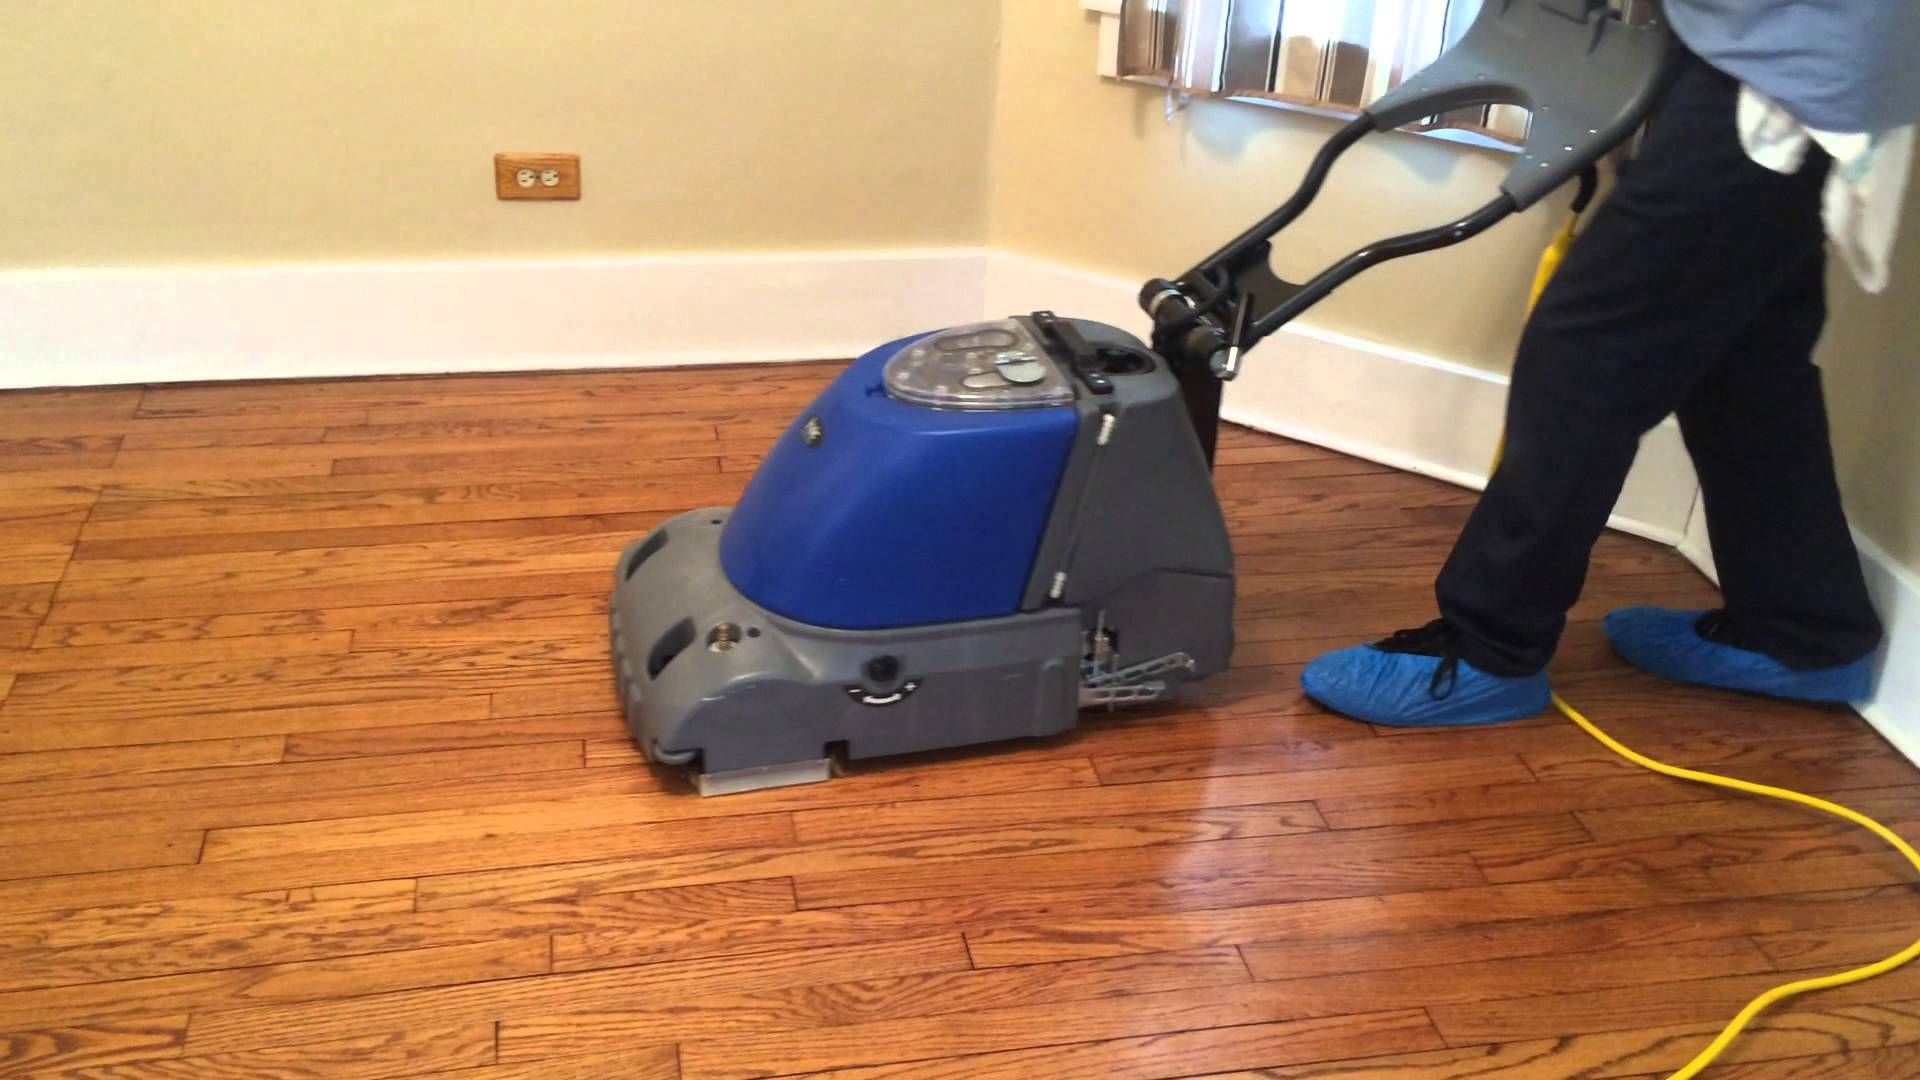 Pin by Easy Clean Carpet Care on Cleaning Service in